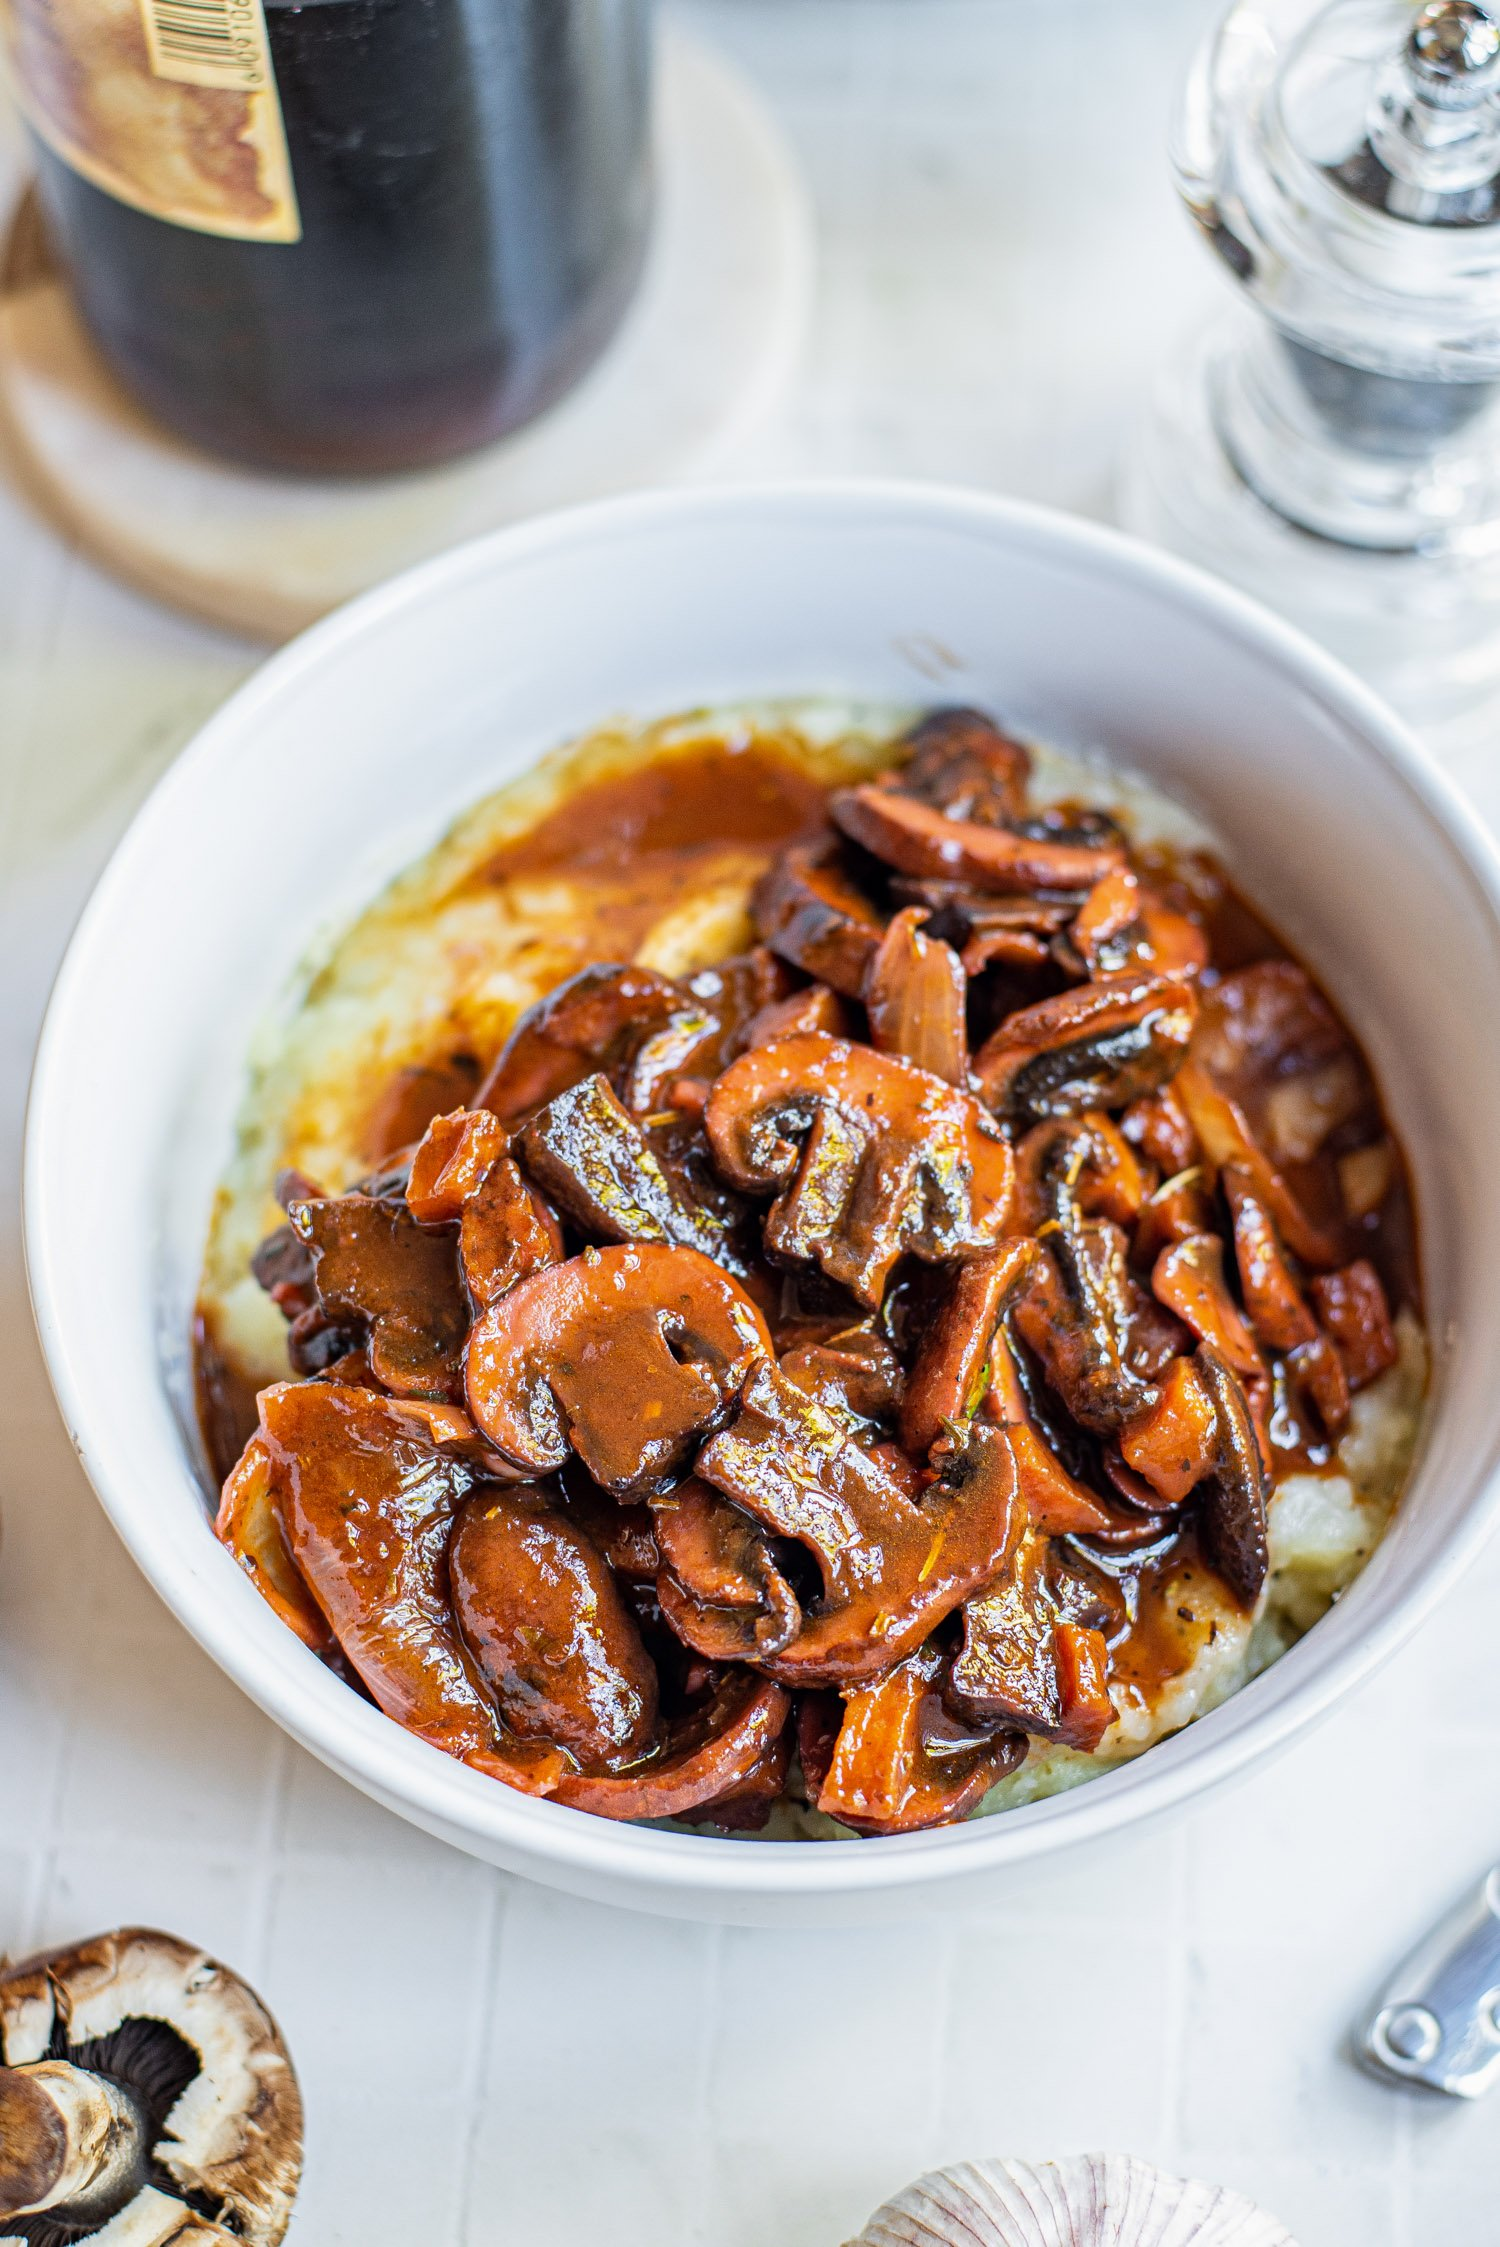 mushrooms served over mashed potatoes in a bowl